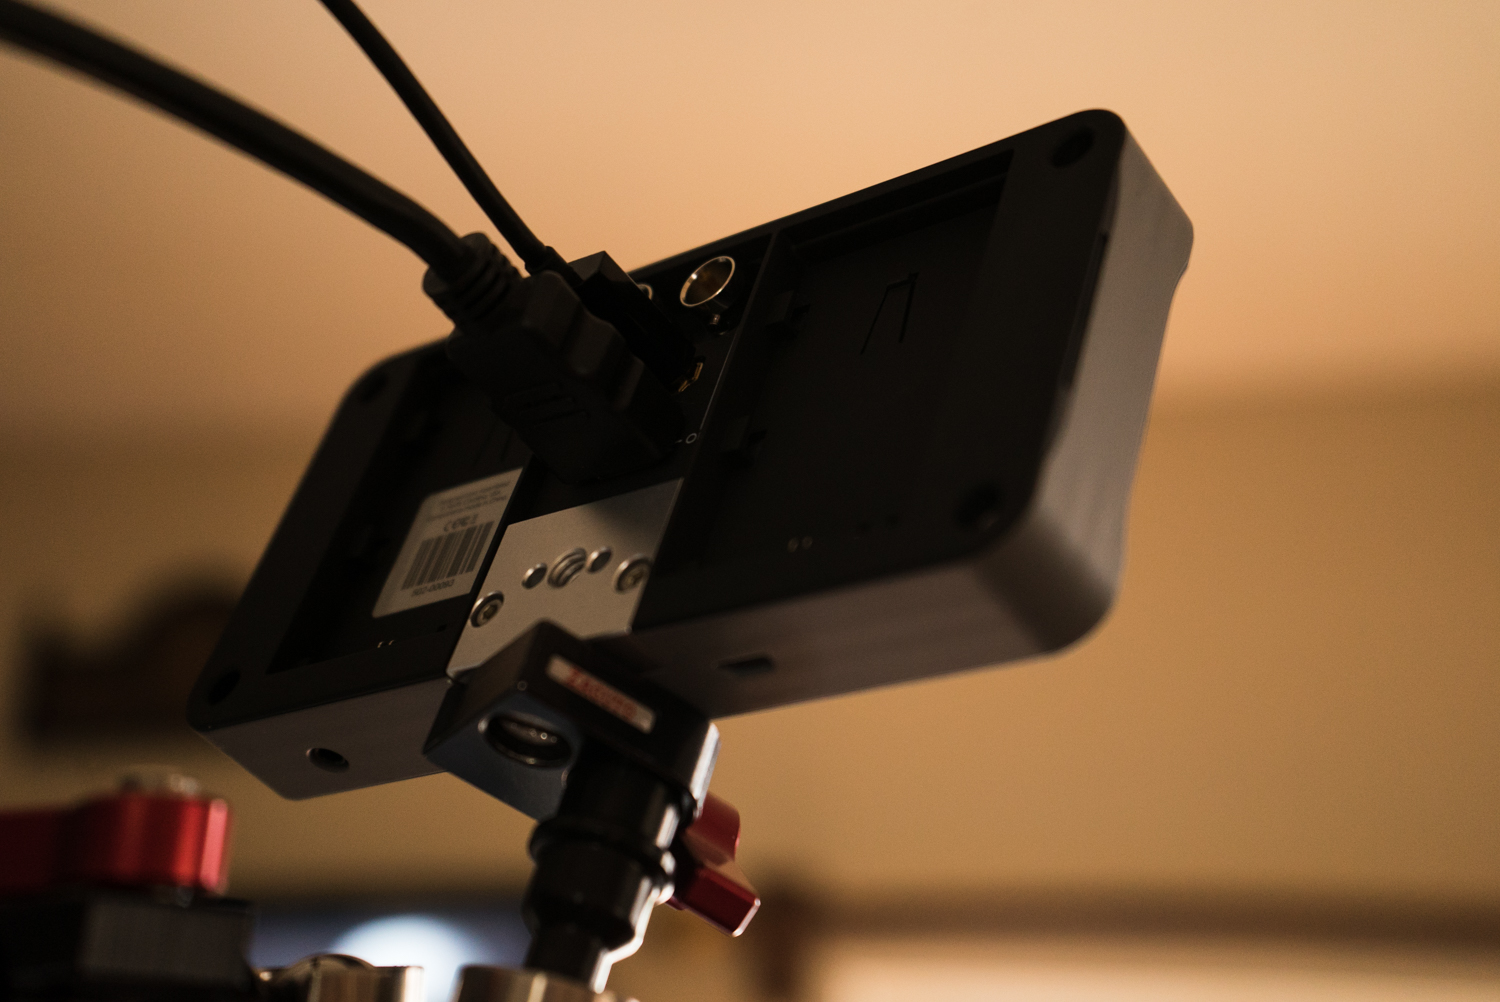 Back of the SmallHD 502 - HDMI In/Out and SDI In/Out